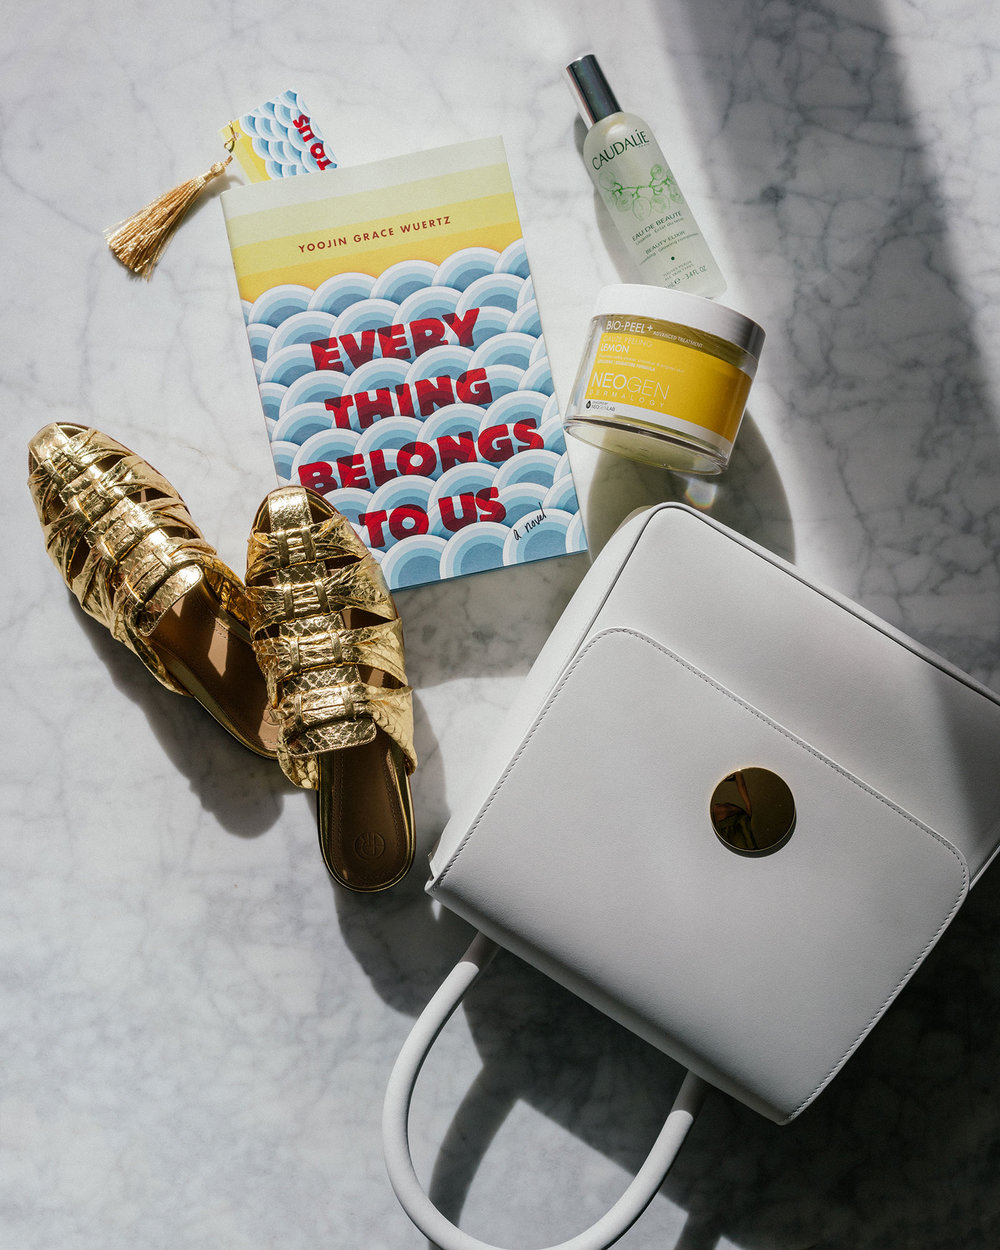 Everything Belongs To Us ,  Caudalie Mist ,  Neogen Treatment ,  Mansur Gavriel Bag ,  The Row Shoes